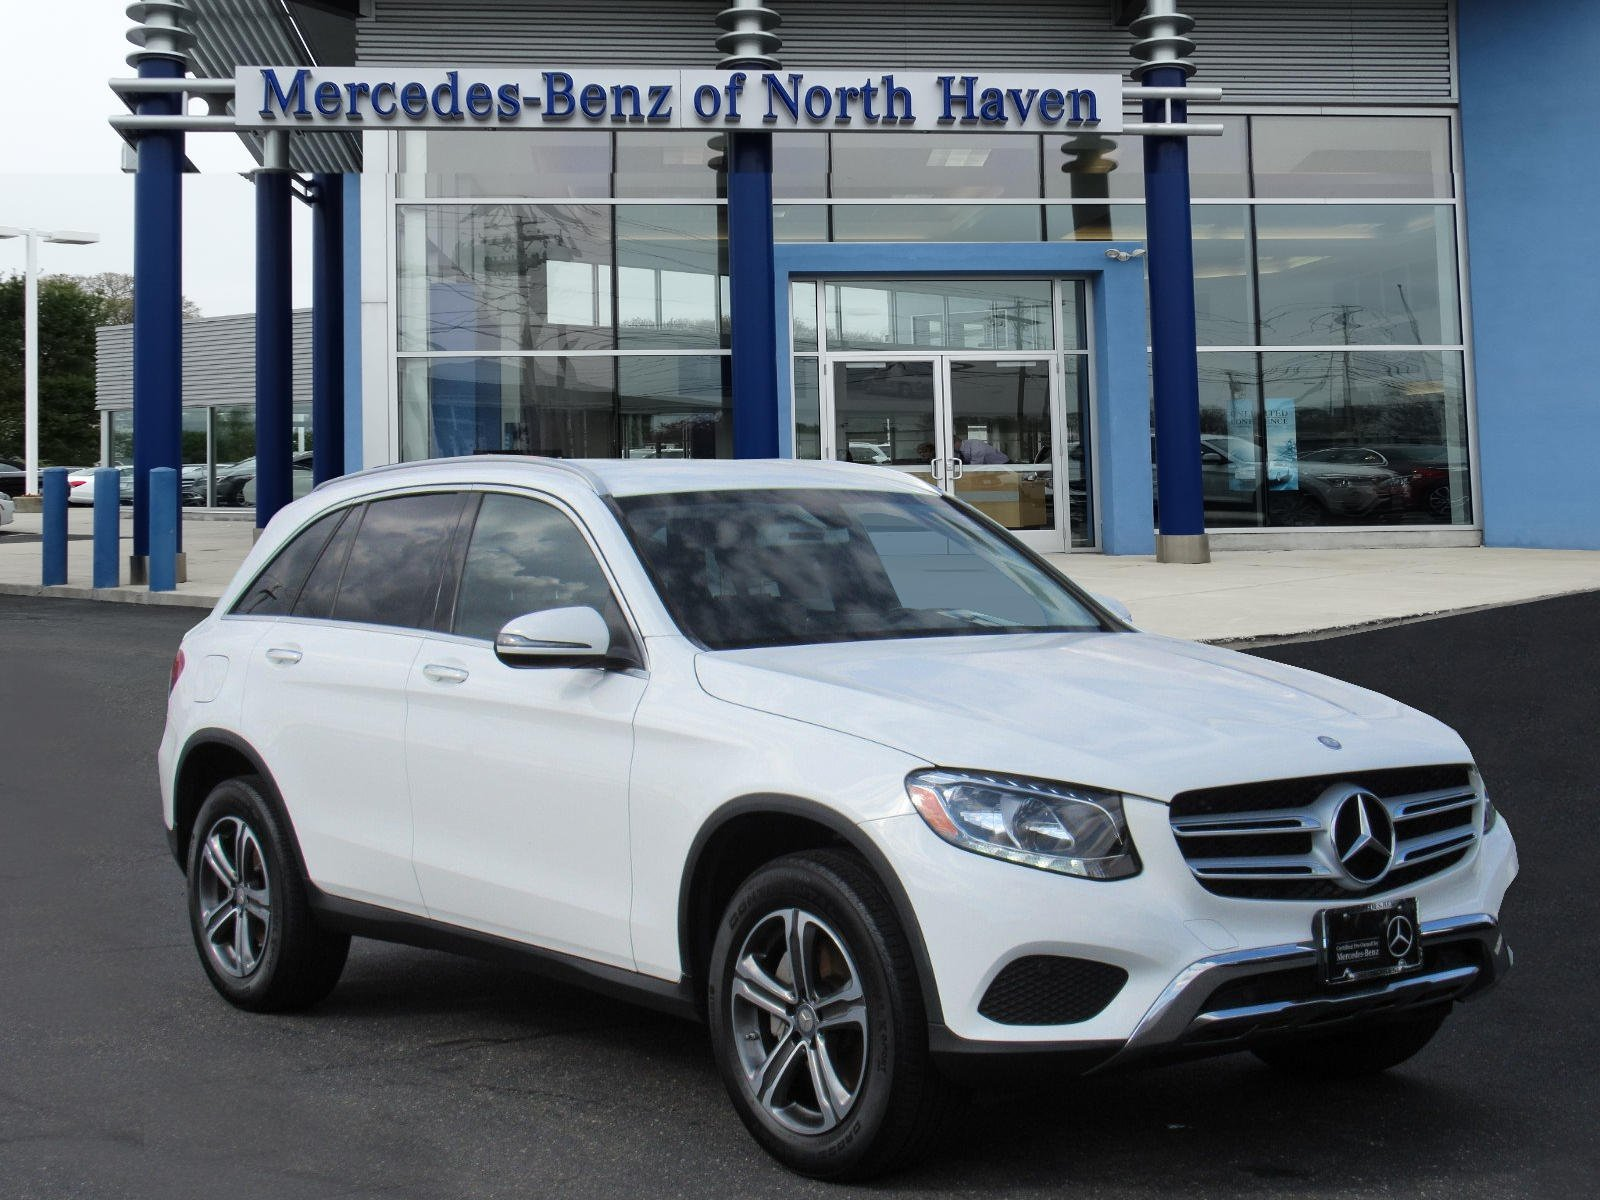 Certified Pre Owned 2016 Mercedes Benz GLC GLC 300 SUV in North